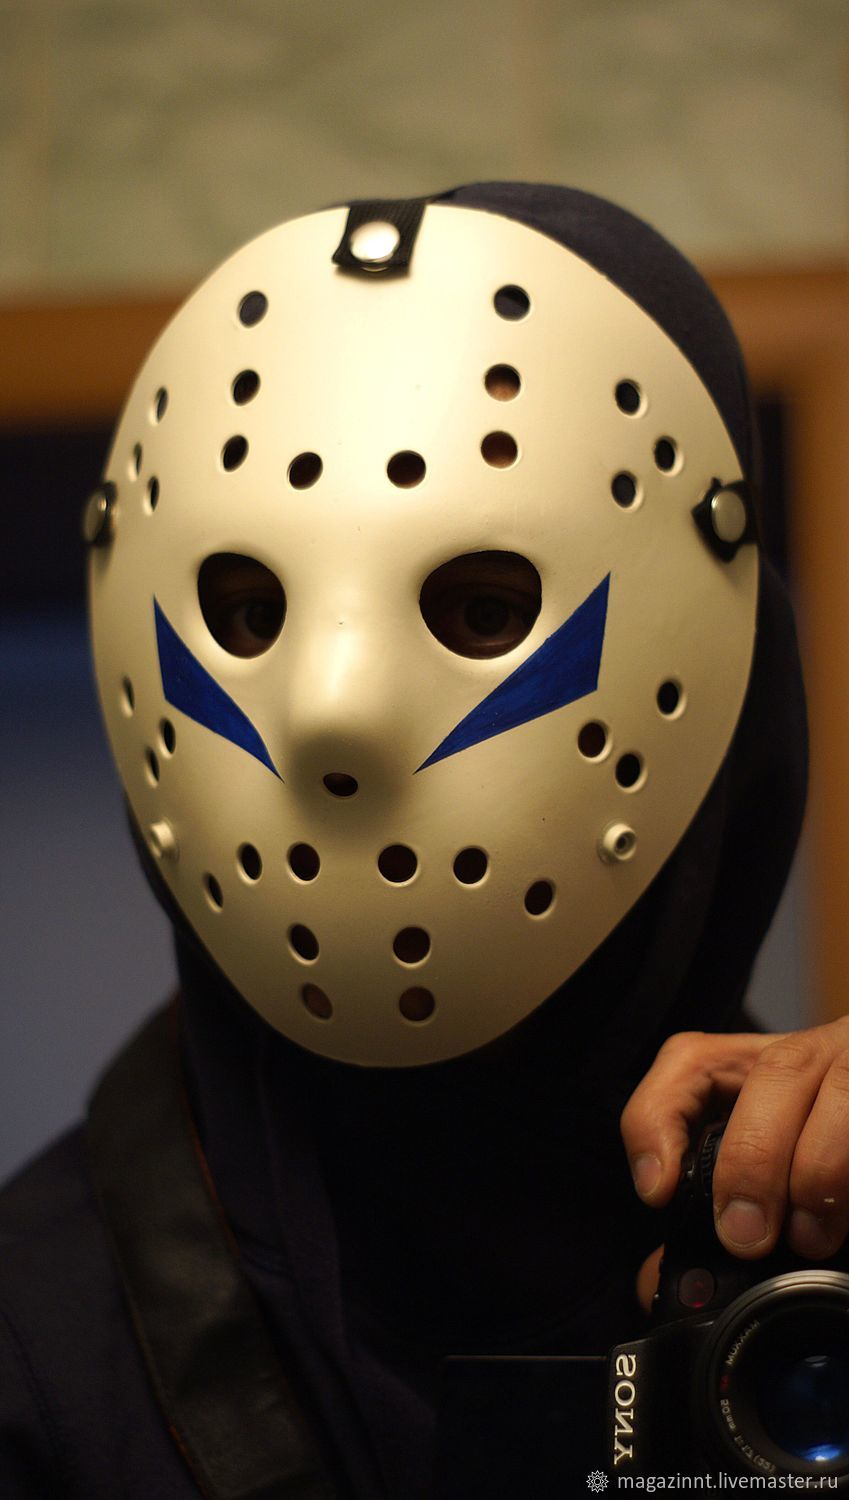 Replica Friday the 13th V: A New Begining (1985) Jason Hockey Mask, Mask for role playing, Moscow,  Фото №1